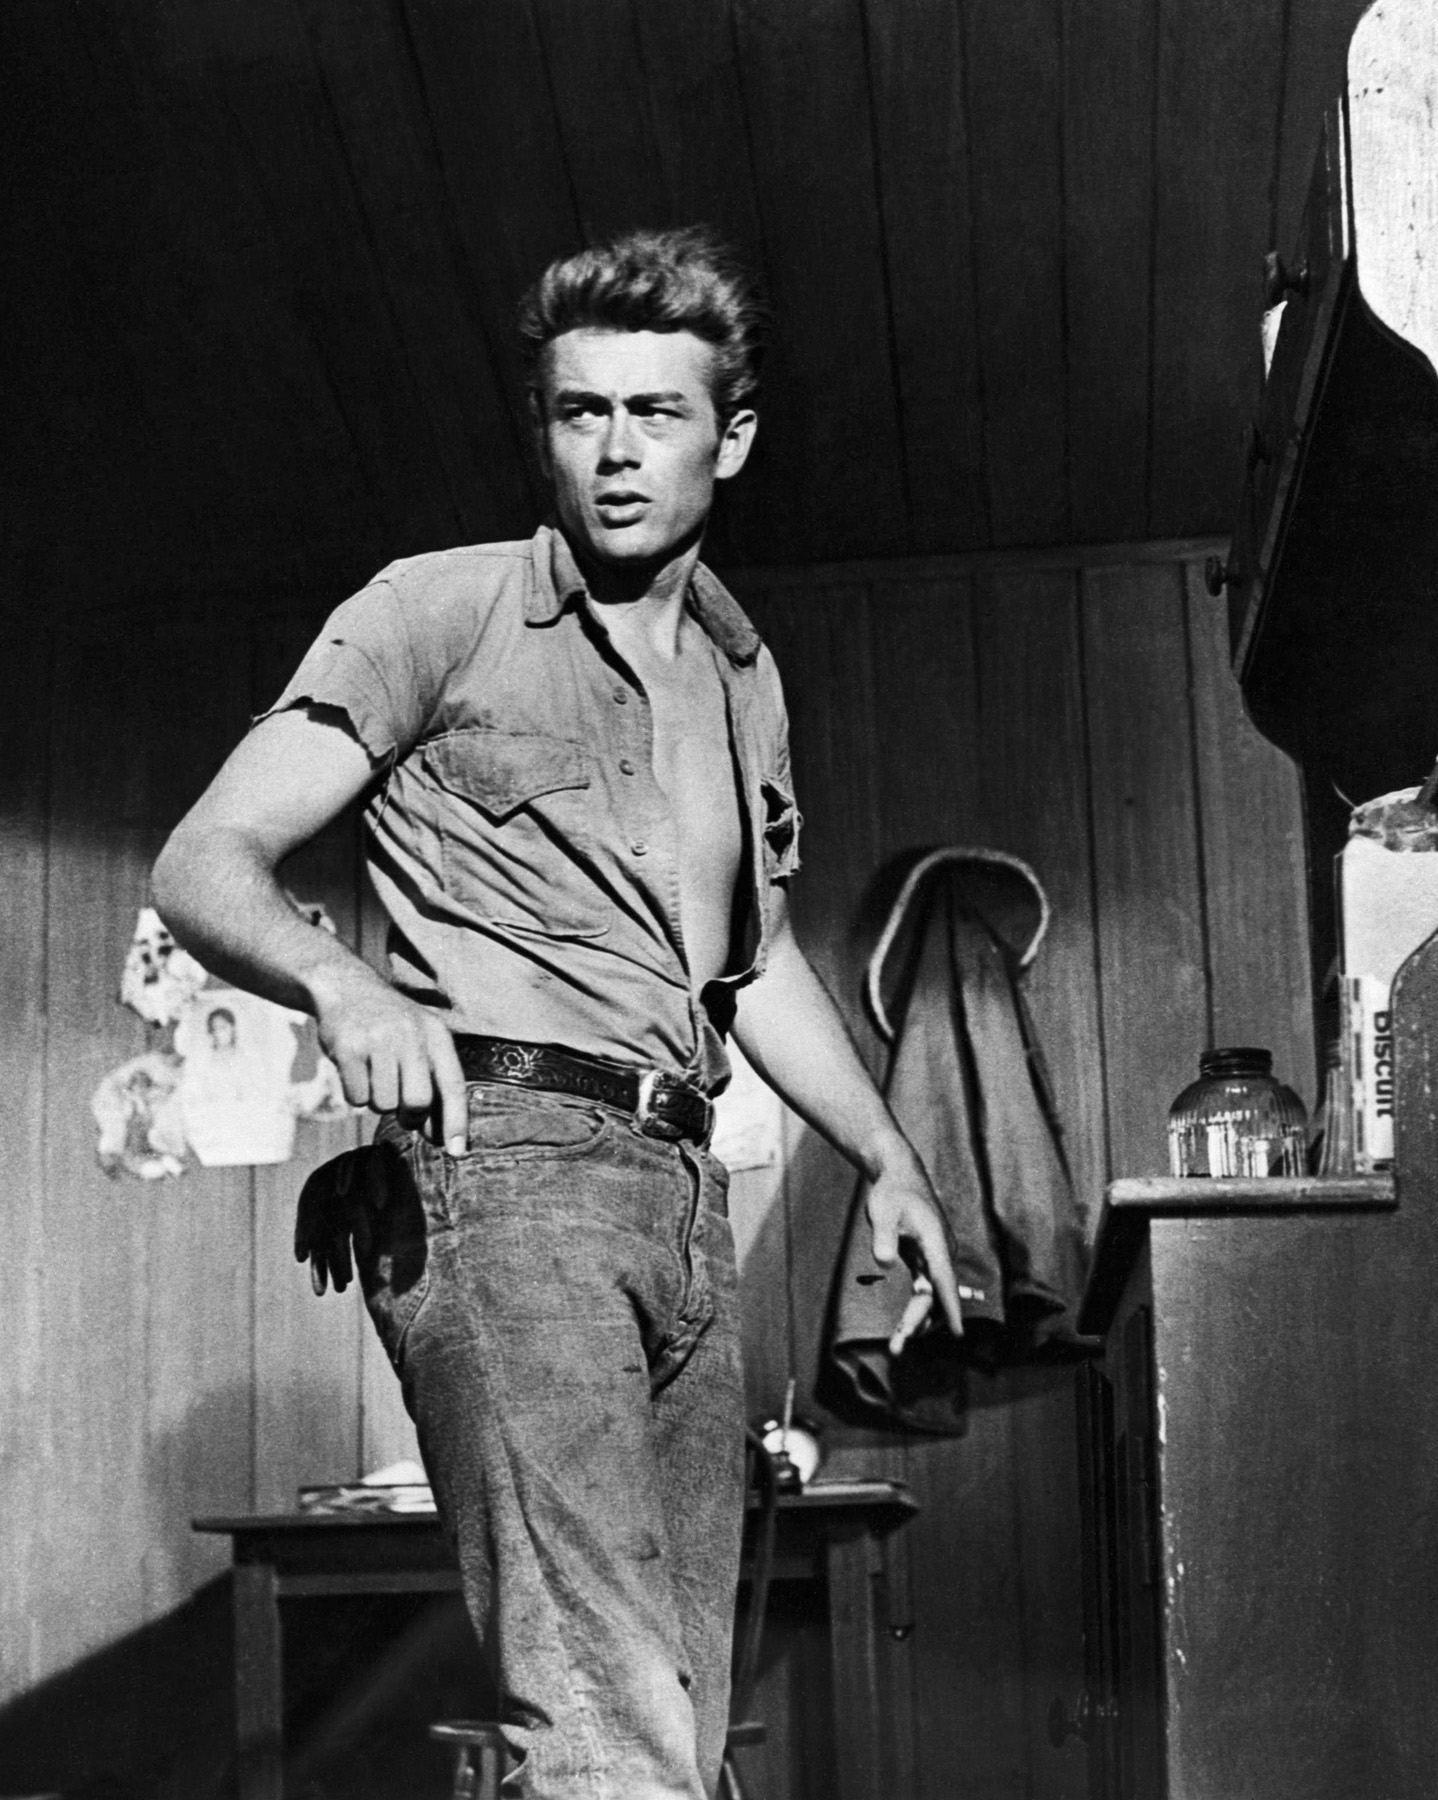 james dean кинопоискjames dean praha, james dean style, james dean quotes, james dean dennis stock, james dean was, james dean кто это, james dean movie, james dean фильм, james dean glasses, james dean instagram, james dean новосибирск, james dean wasn't speeding, james dean biography, james dean film, james dean 2001 watch online, james dean prague club, james dean bar, james dean кинопоиск, james dean driving experience, james dean times square